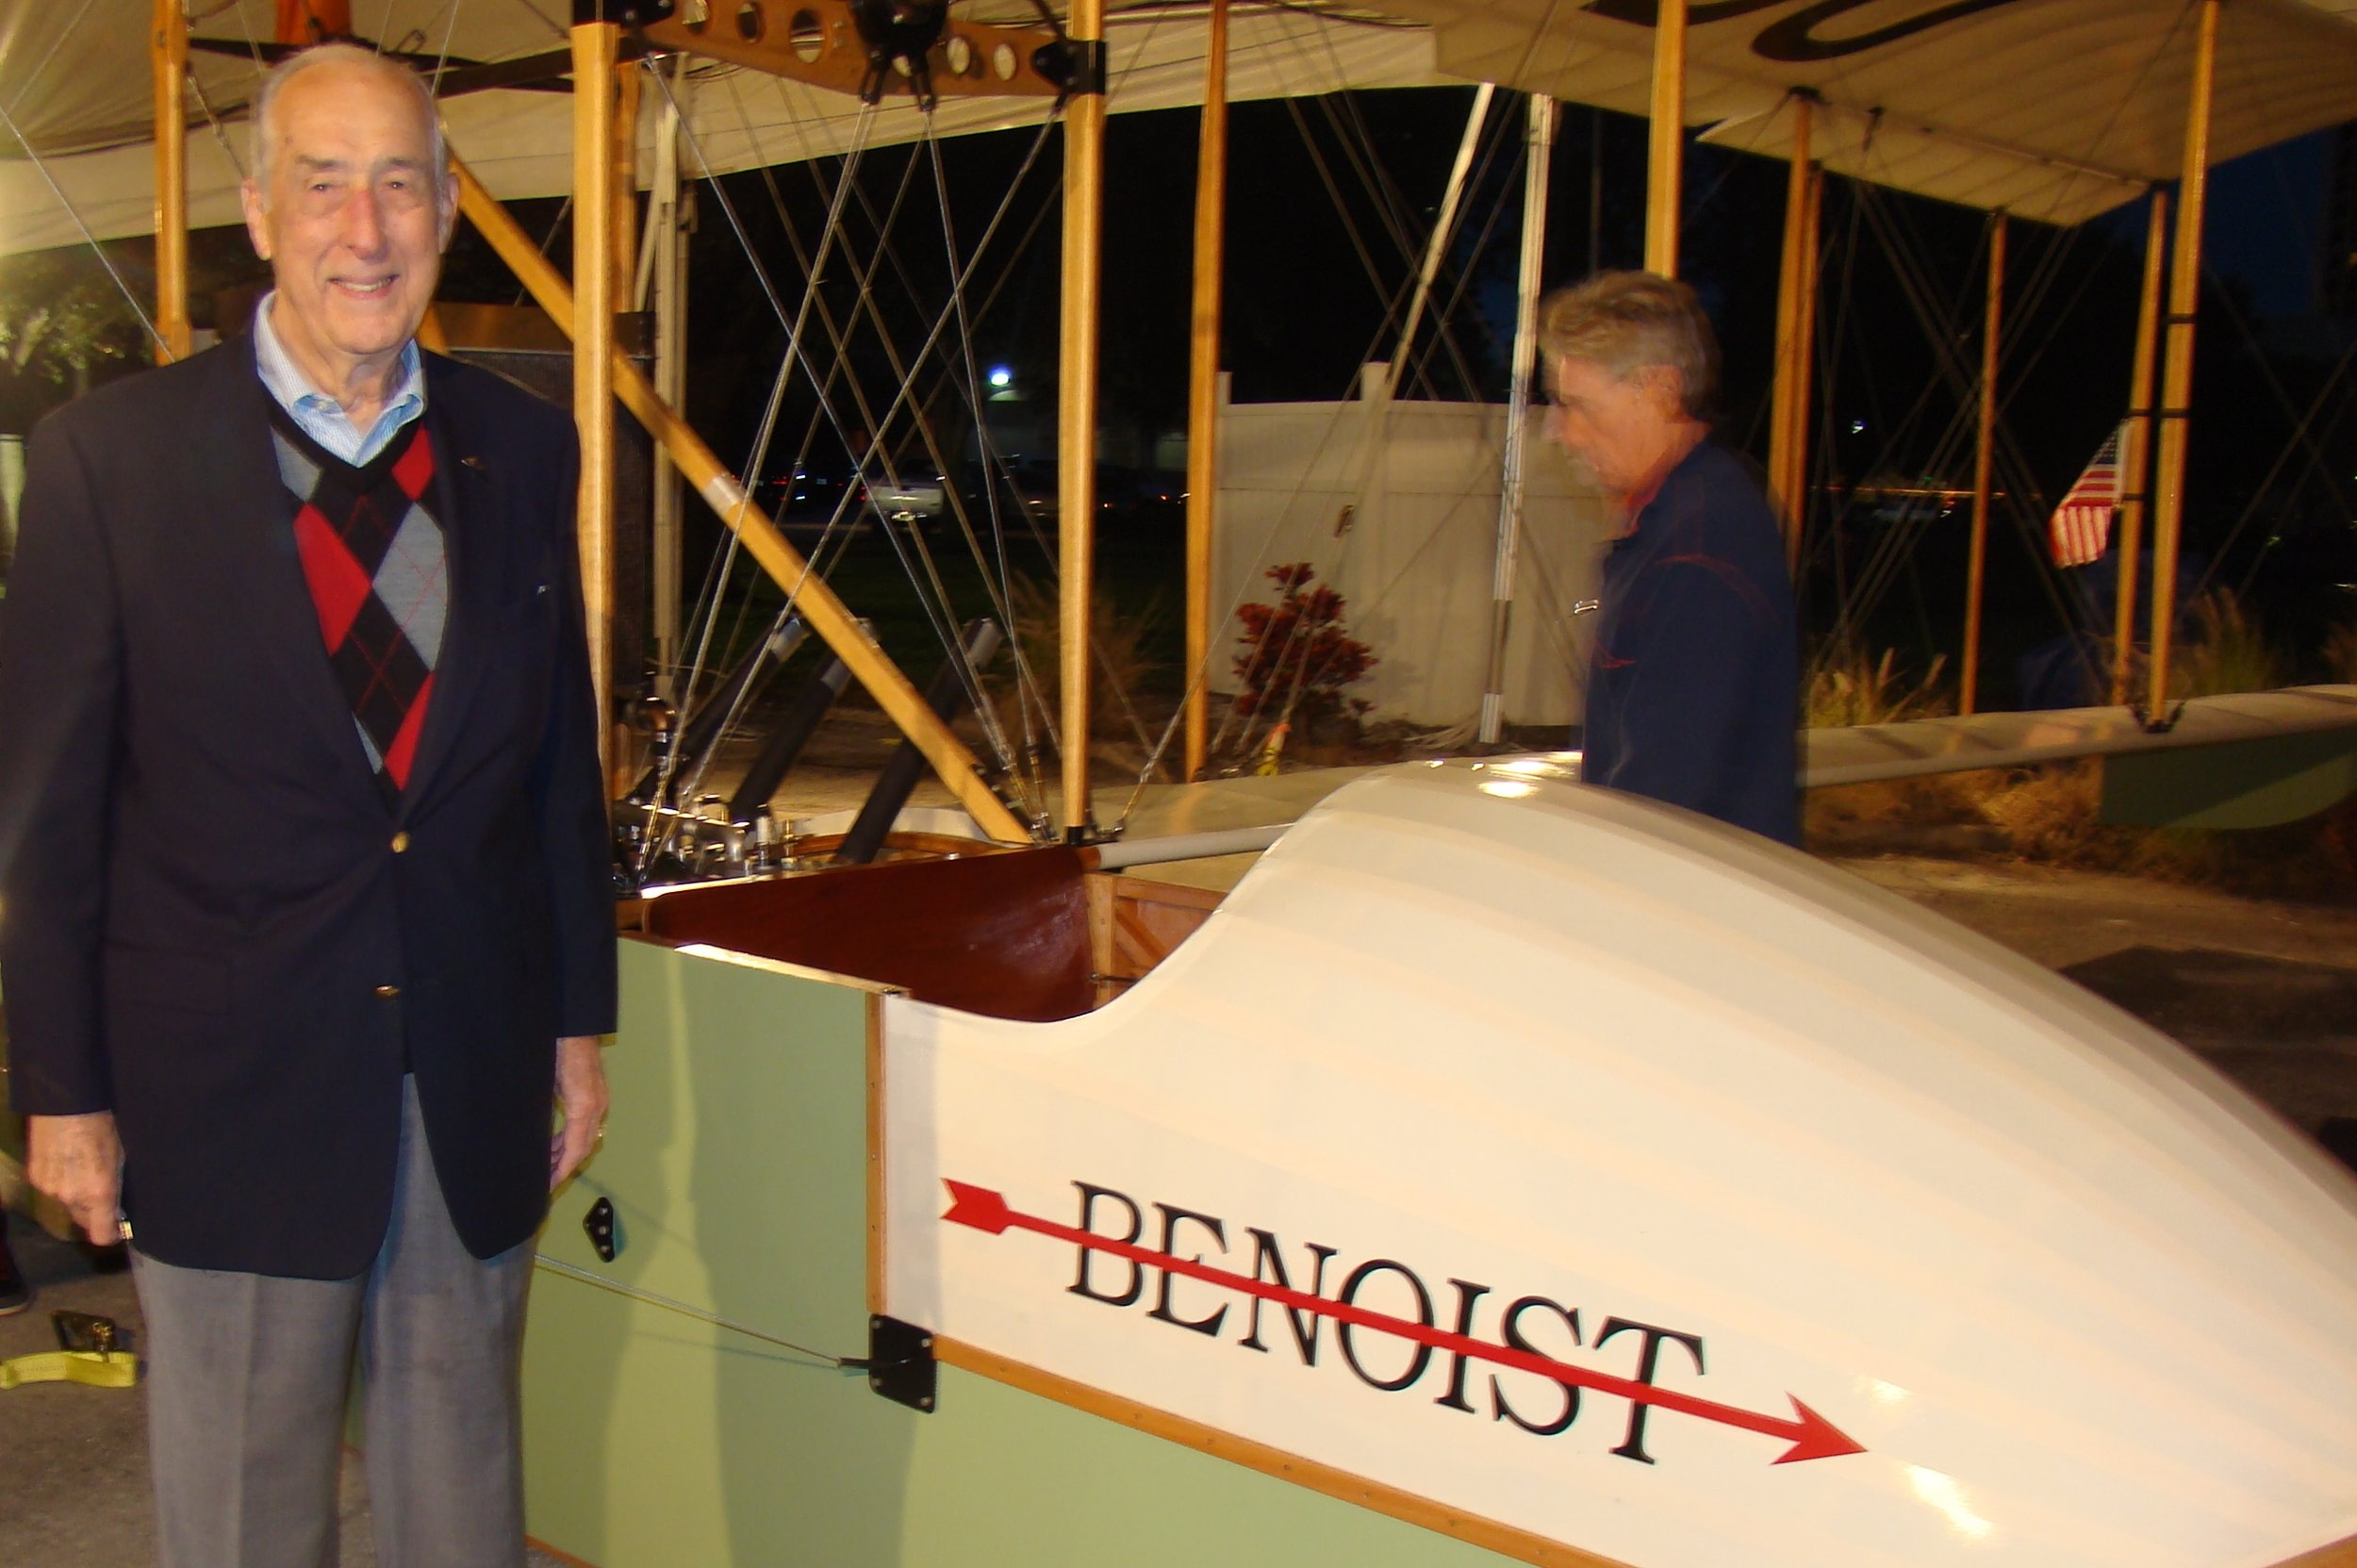 Dick Newton by Benoist Airboat, 31 Dec '13.JPG